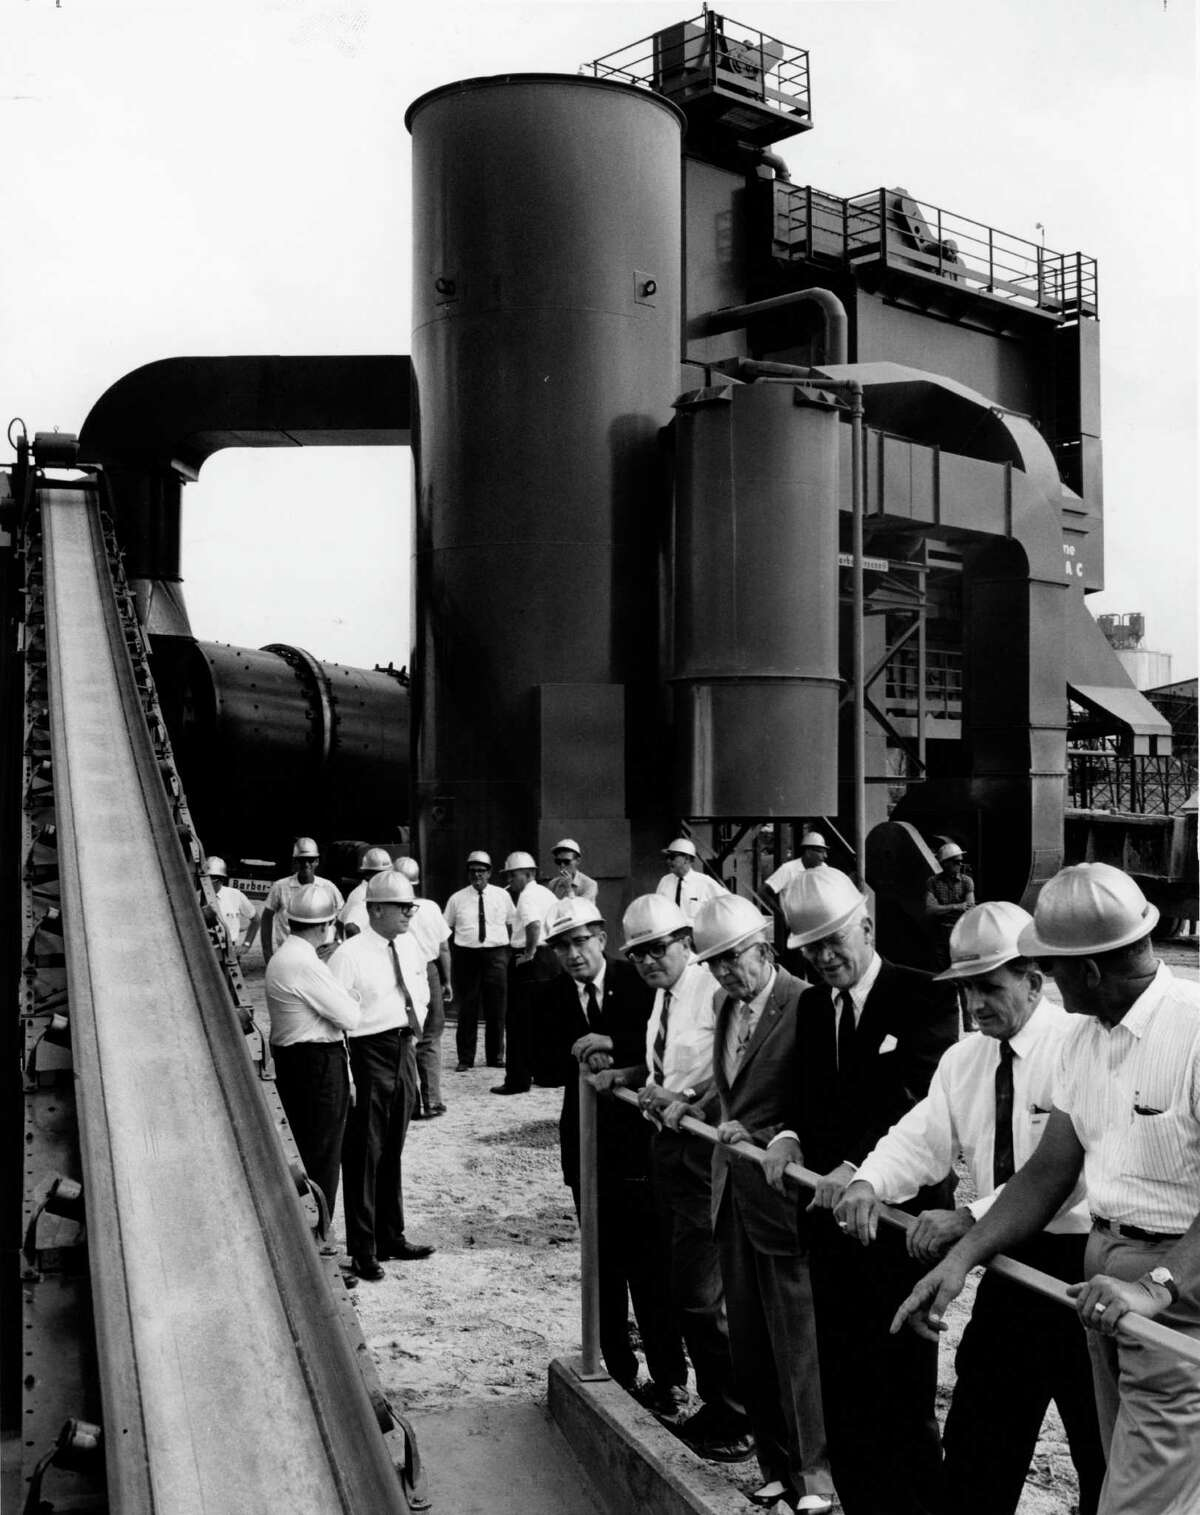 06/07/1965 - Brown & Root officials watch materials move to the company's new asphalt plant, 3600 Clinton Drive in Houston. From left are: L.J. Derrick; Don B. Smith; Marvin L. Woodfin; George R. Brown and Dalter Corbell.